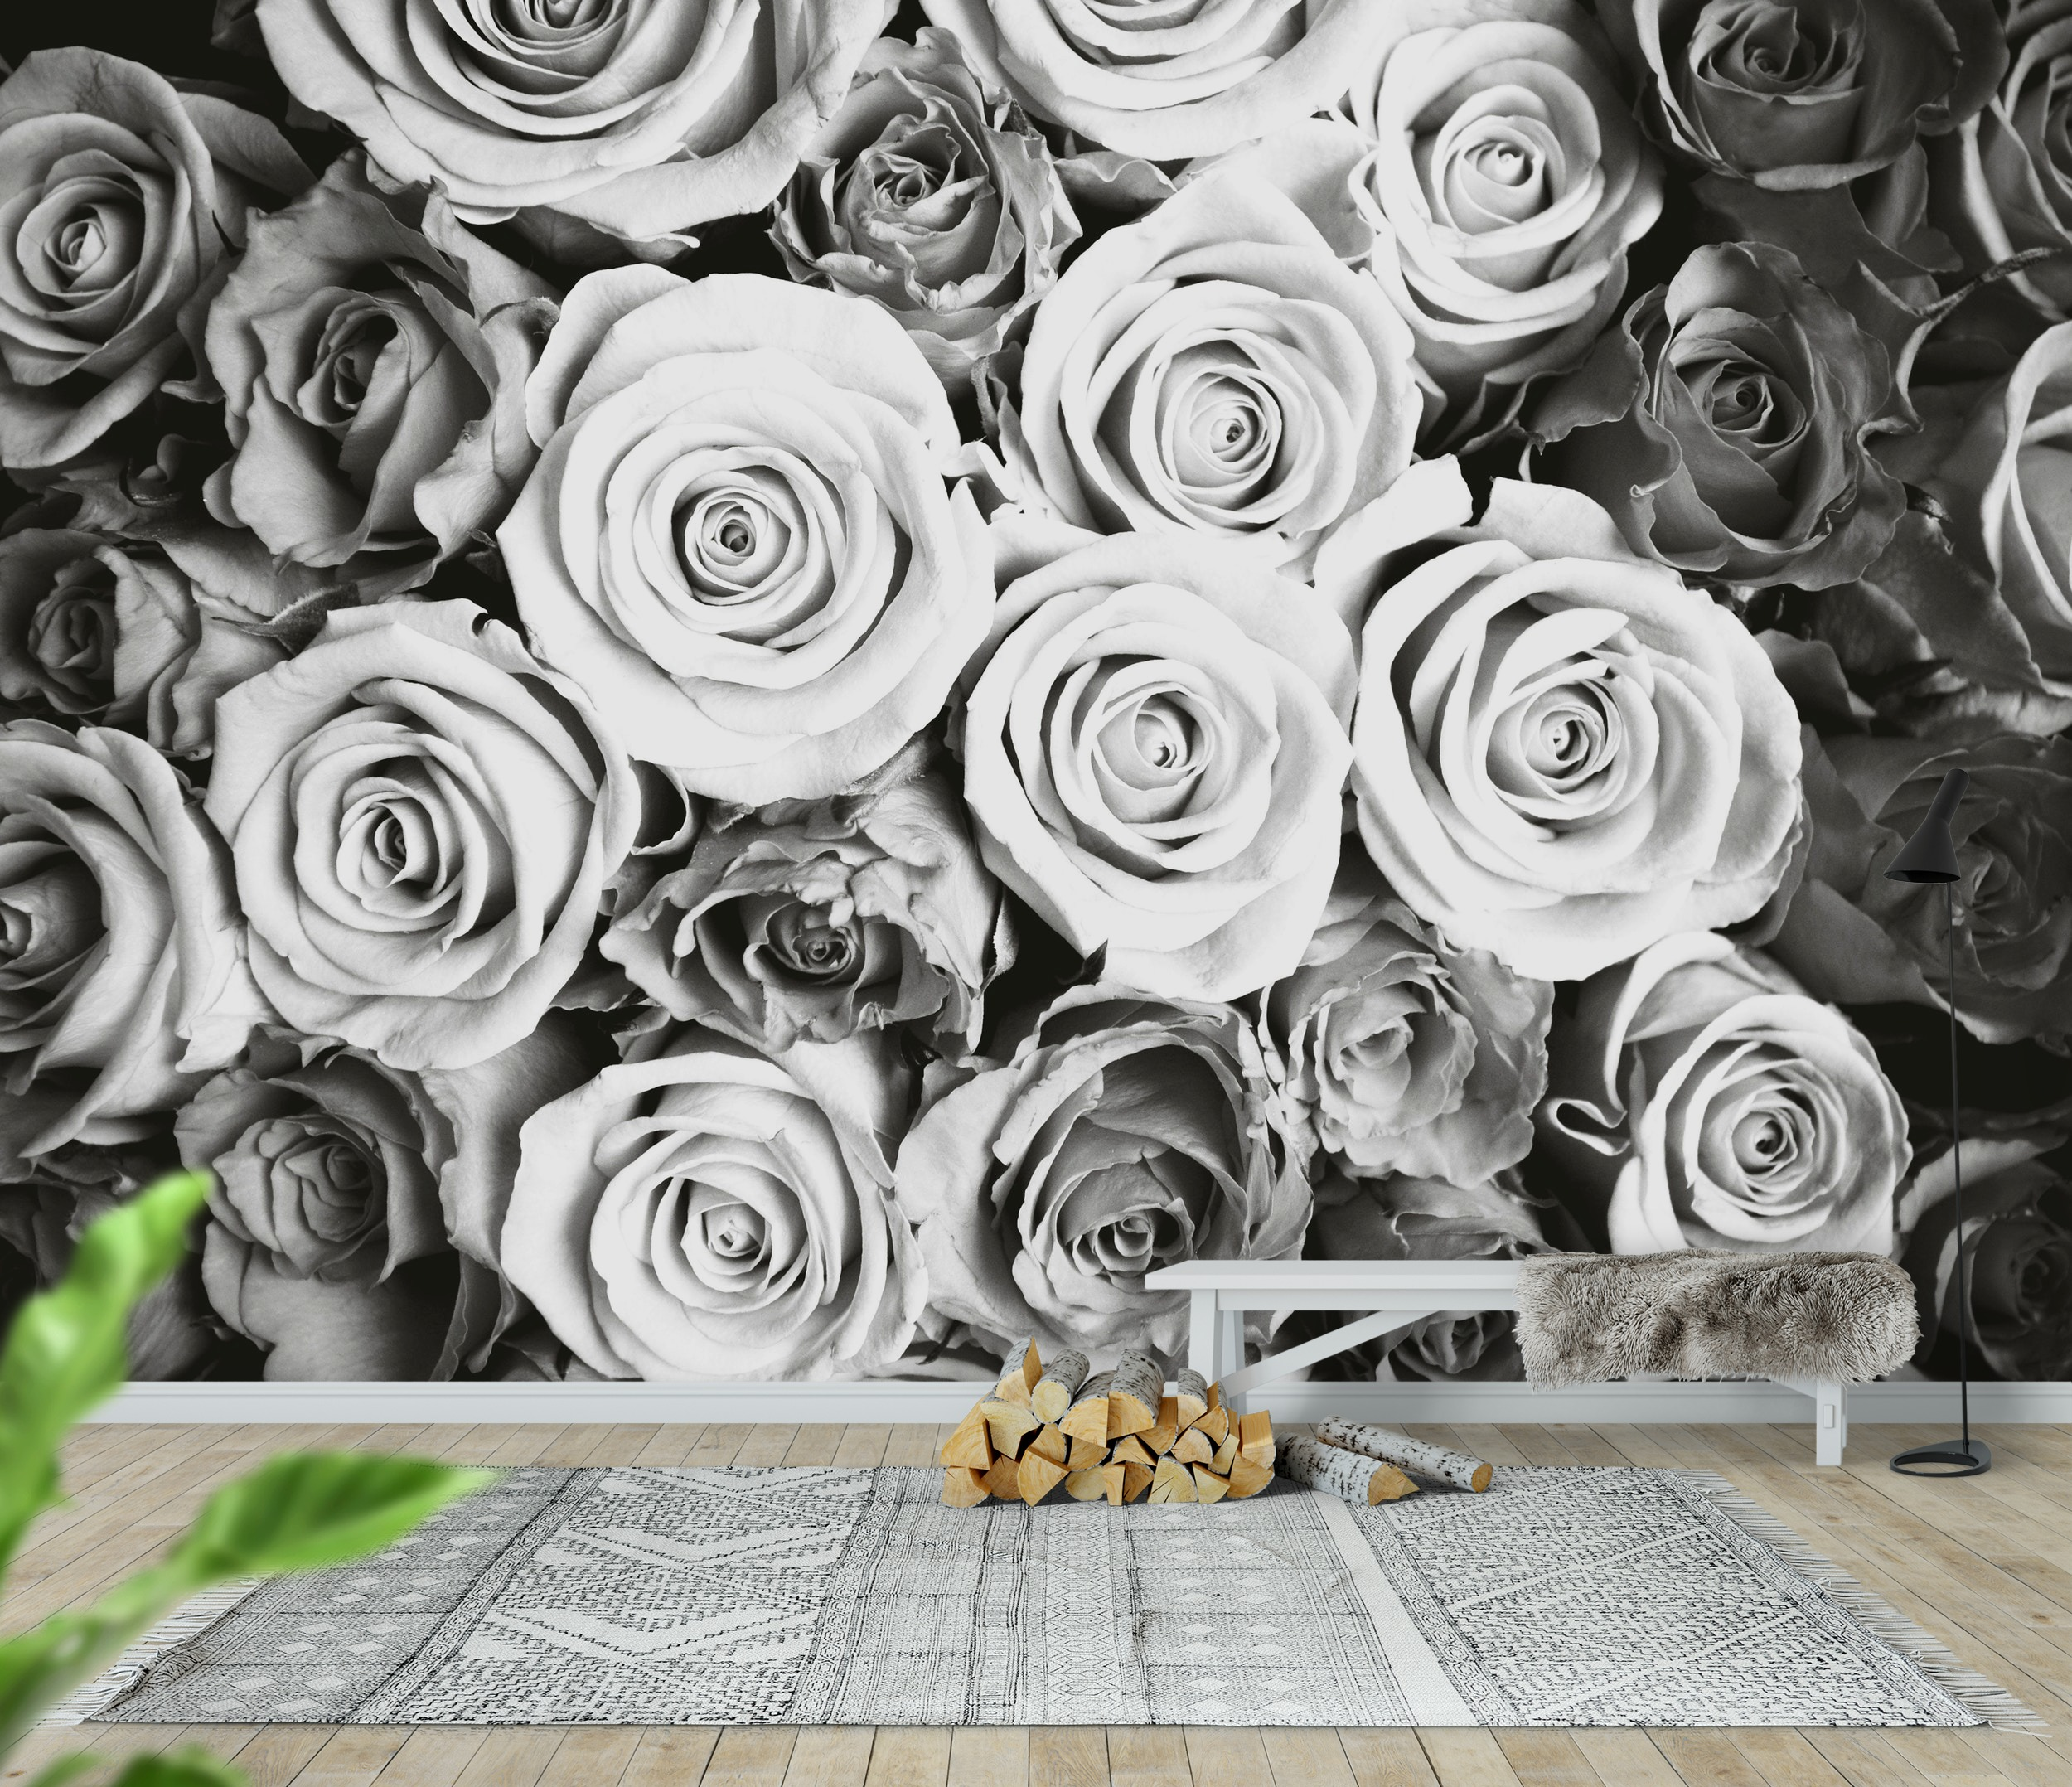 Wall mural roses black and white photo wallpaper happywall for Black and white rose wall mural